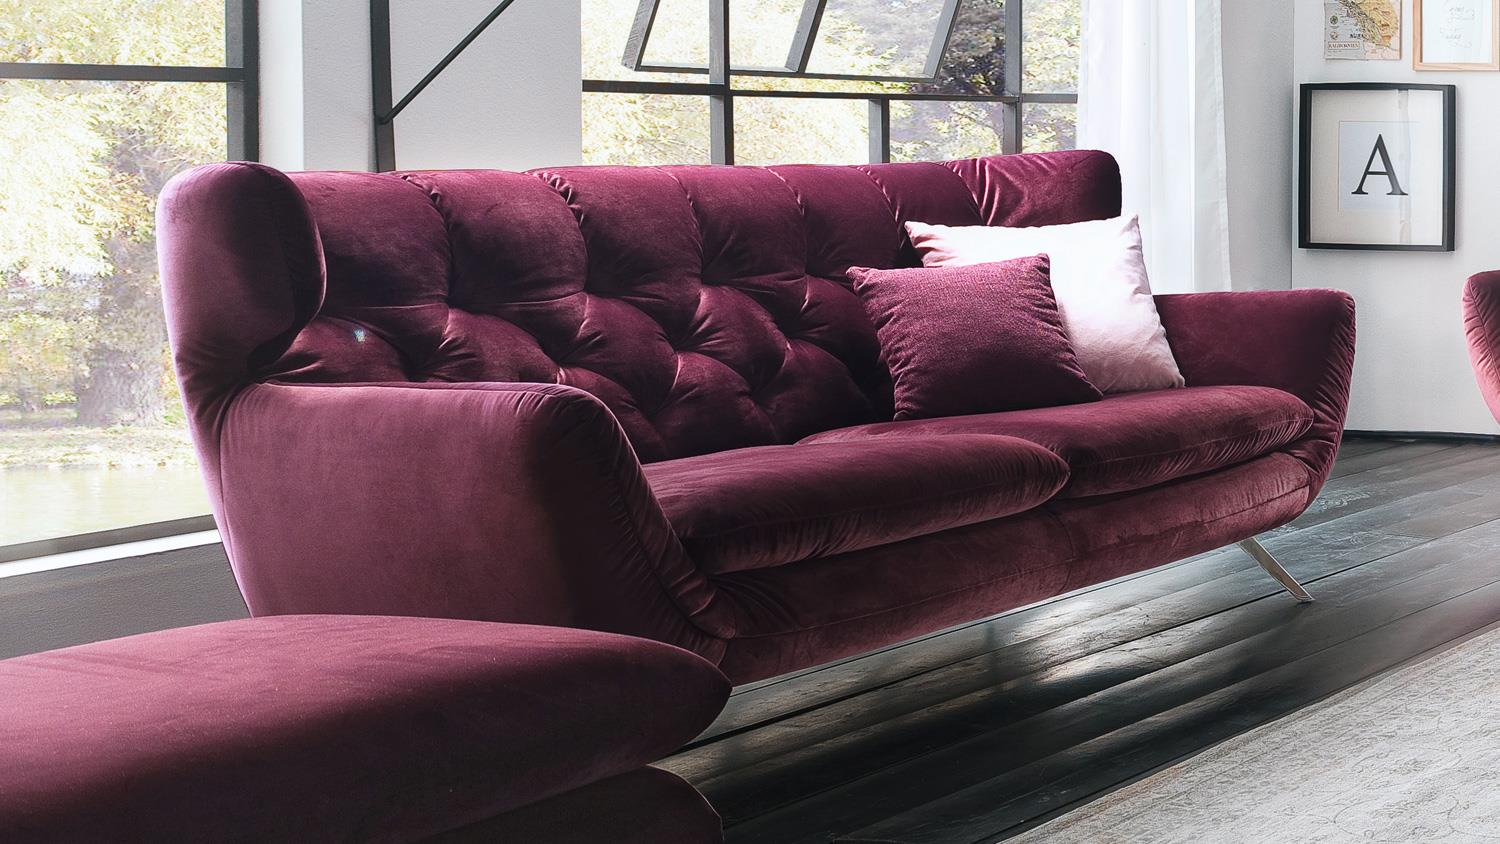 sofa sixty 2 5 sitzer bezug velour stoff purple gestell chrom 200 cm. Black Bedroom Furniture Sets. Home Design Ideas